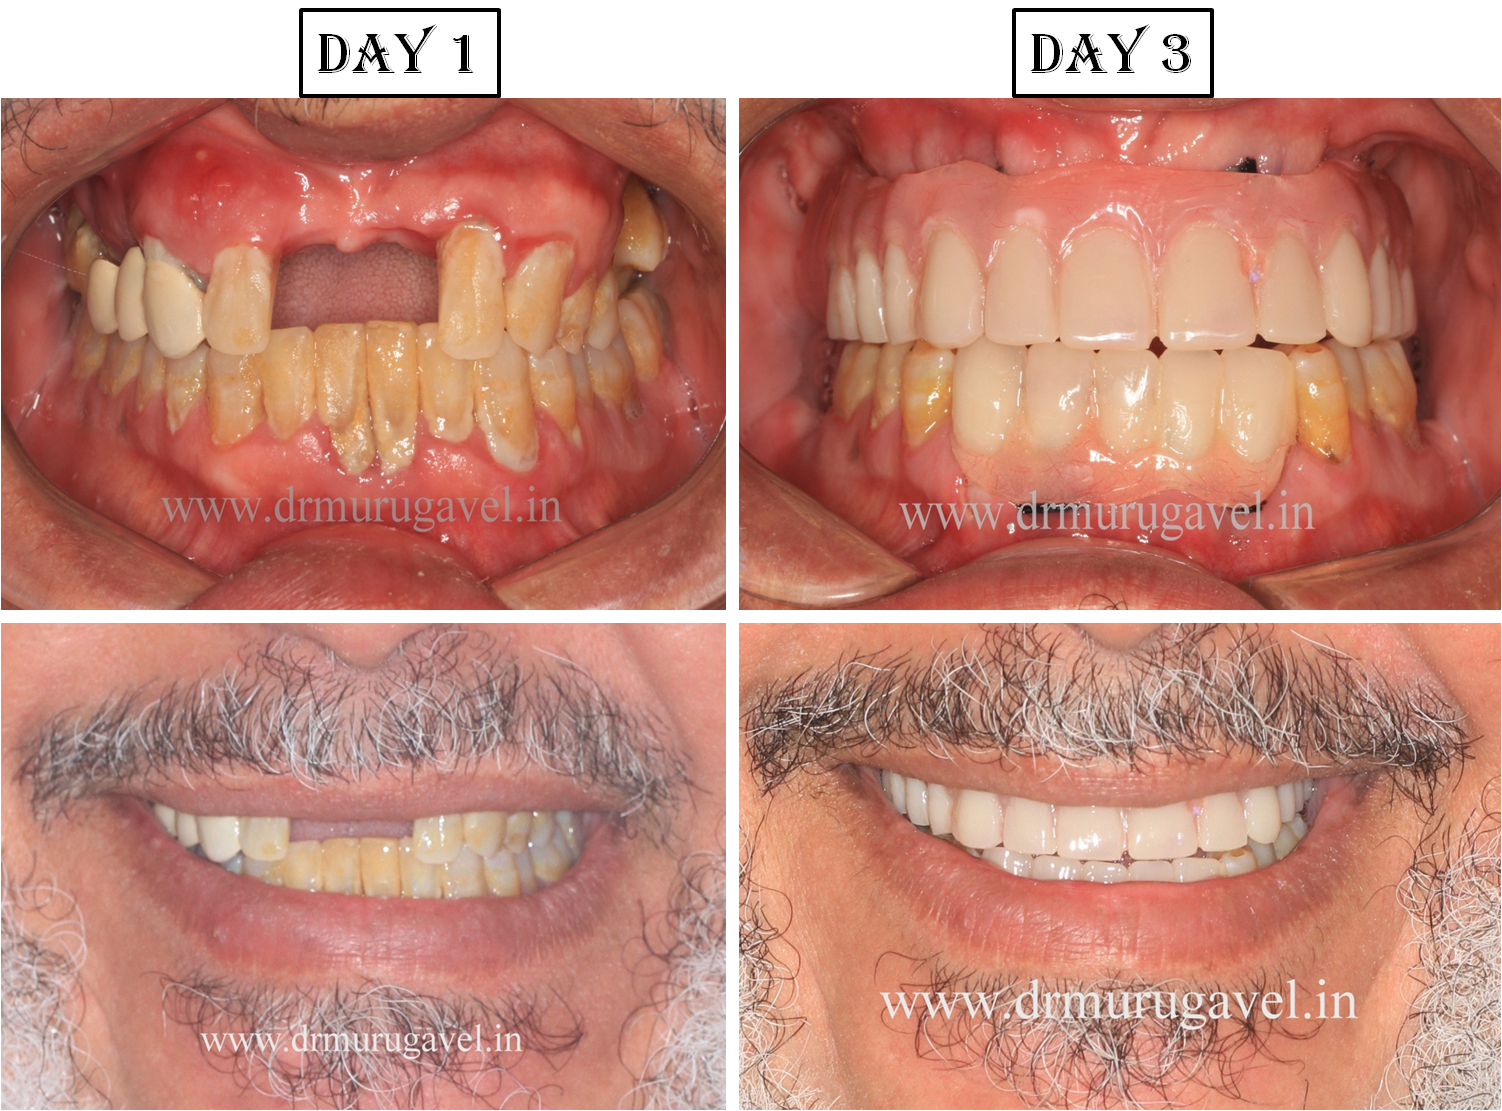 Immediate teeth replacement in chennai